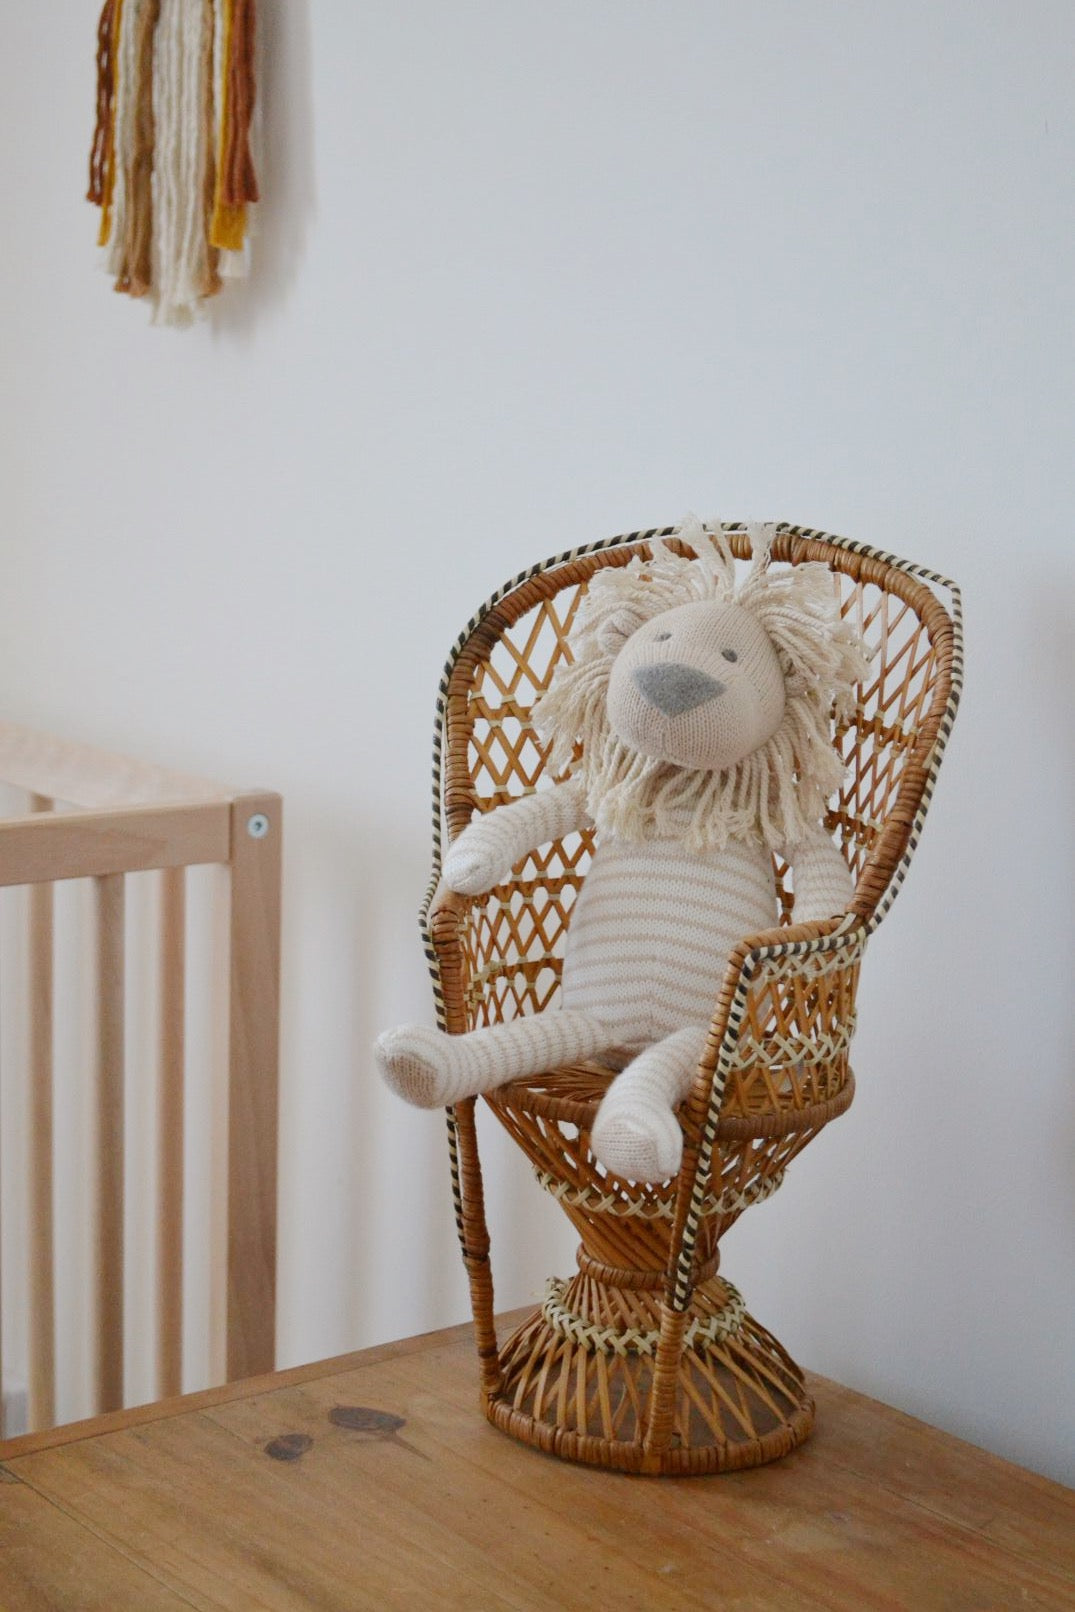 Mini rattan peacock chair with toy lion